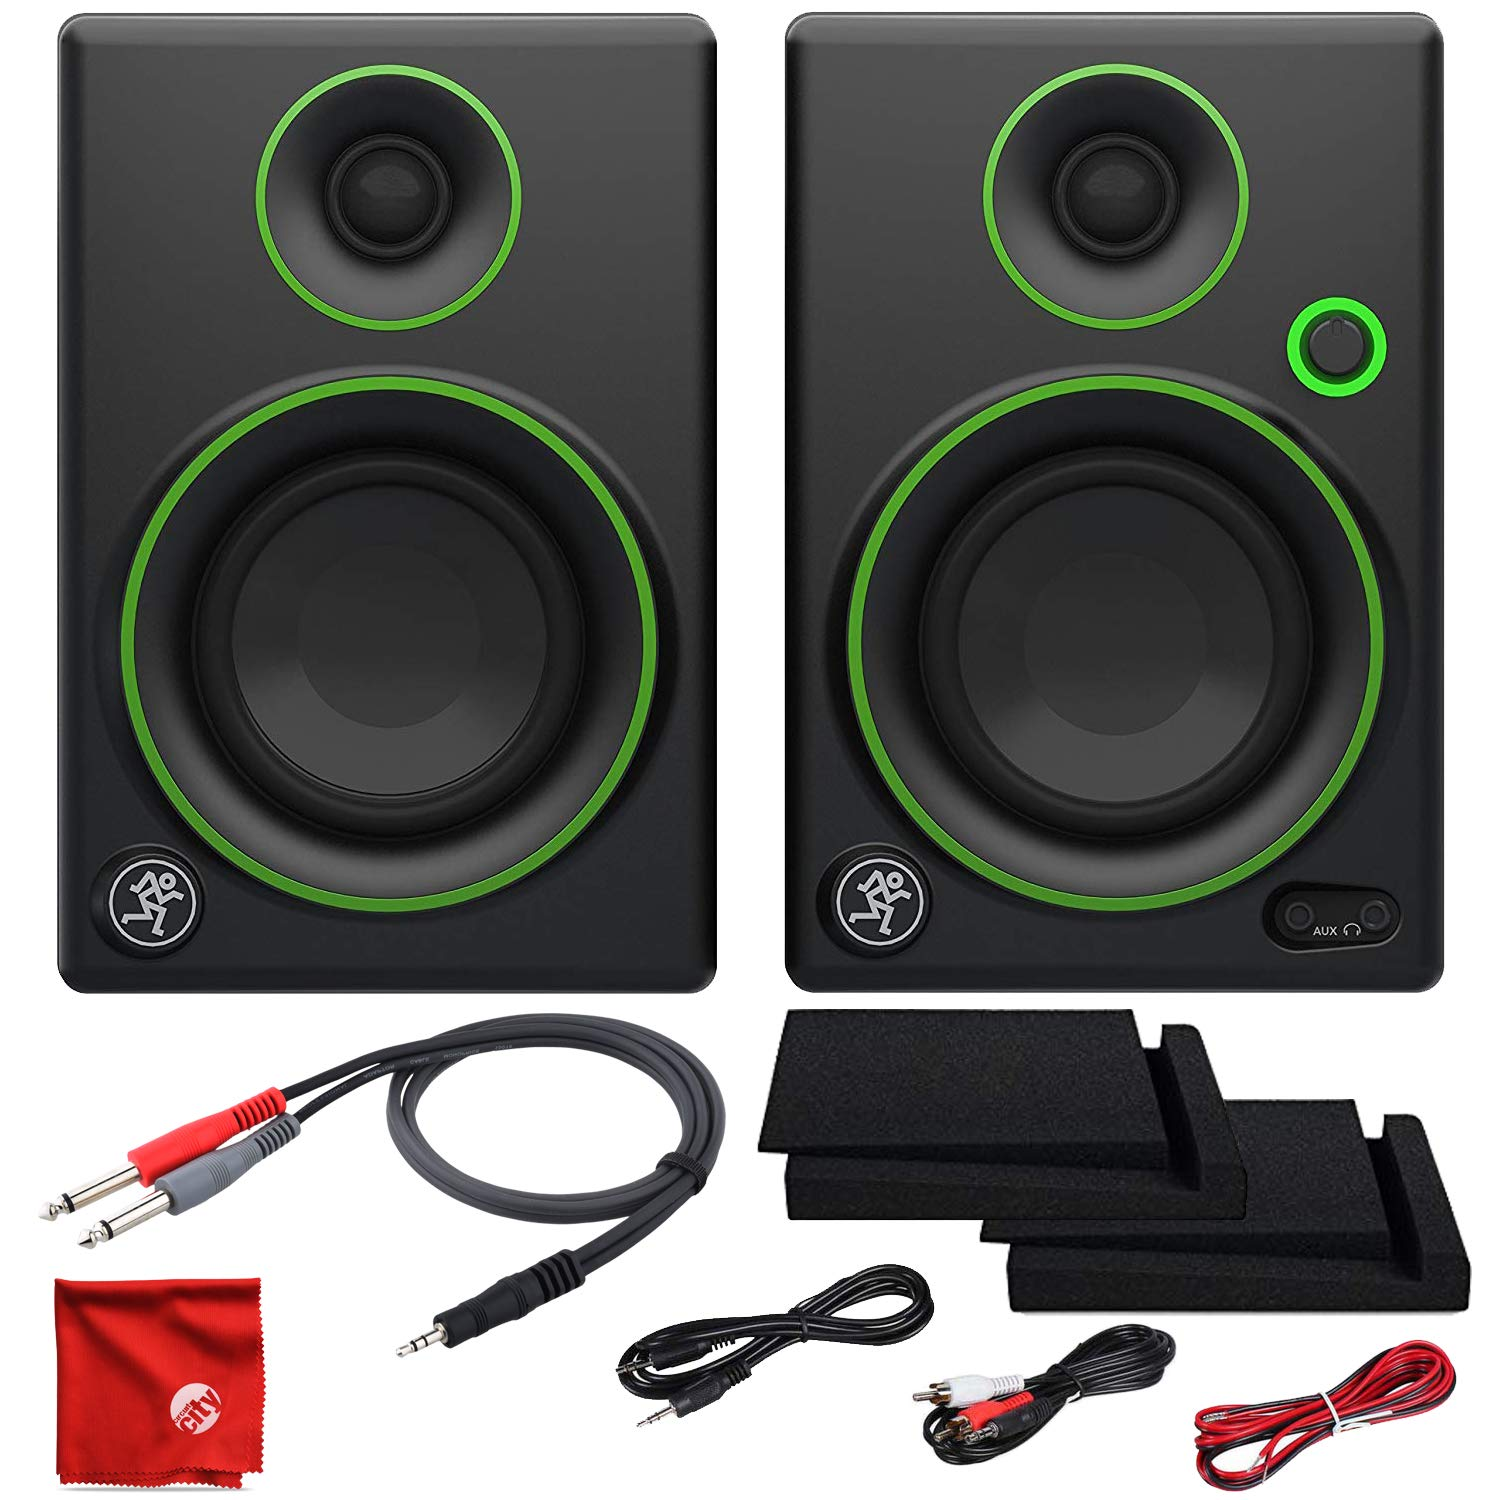 Mackie CR3 3in Creative Reference Multimedia Monitors Bundle with Foam Isolation Pads and Pro Cable Kit